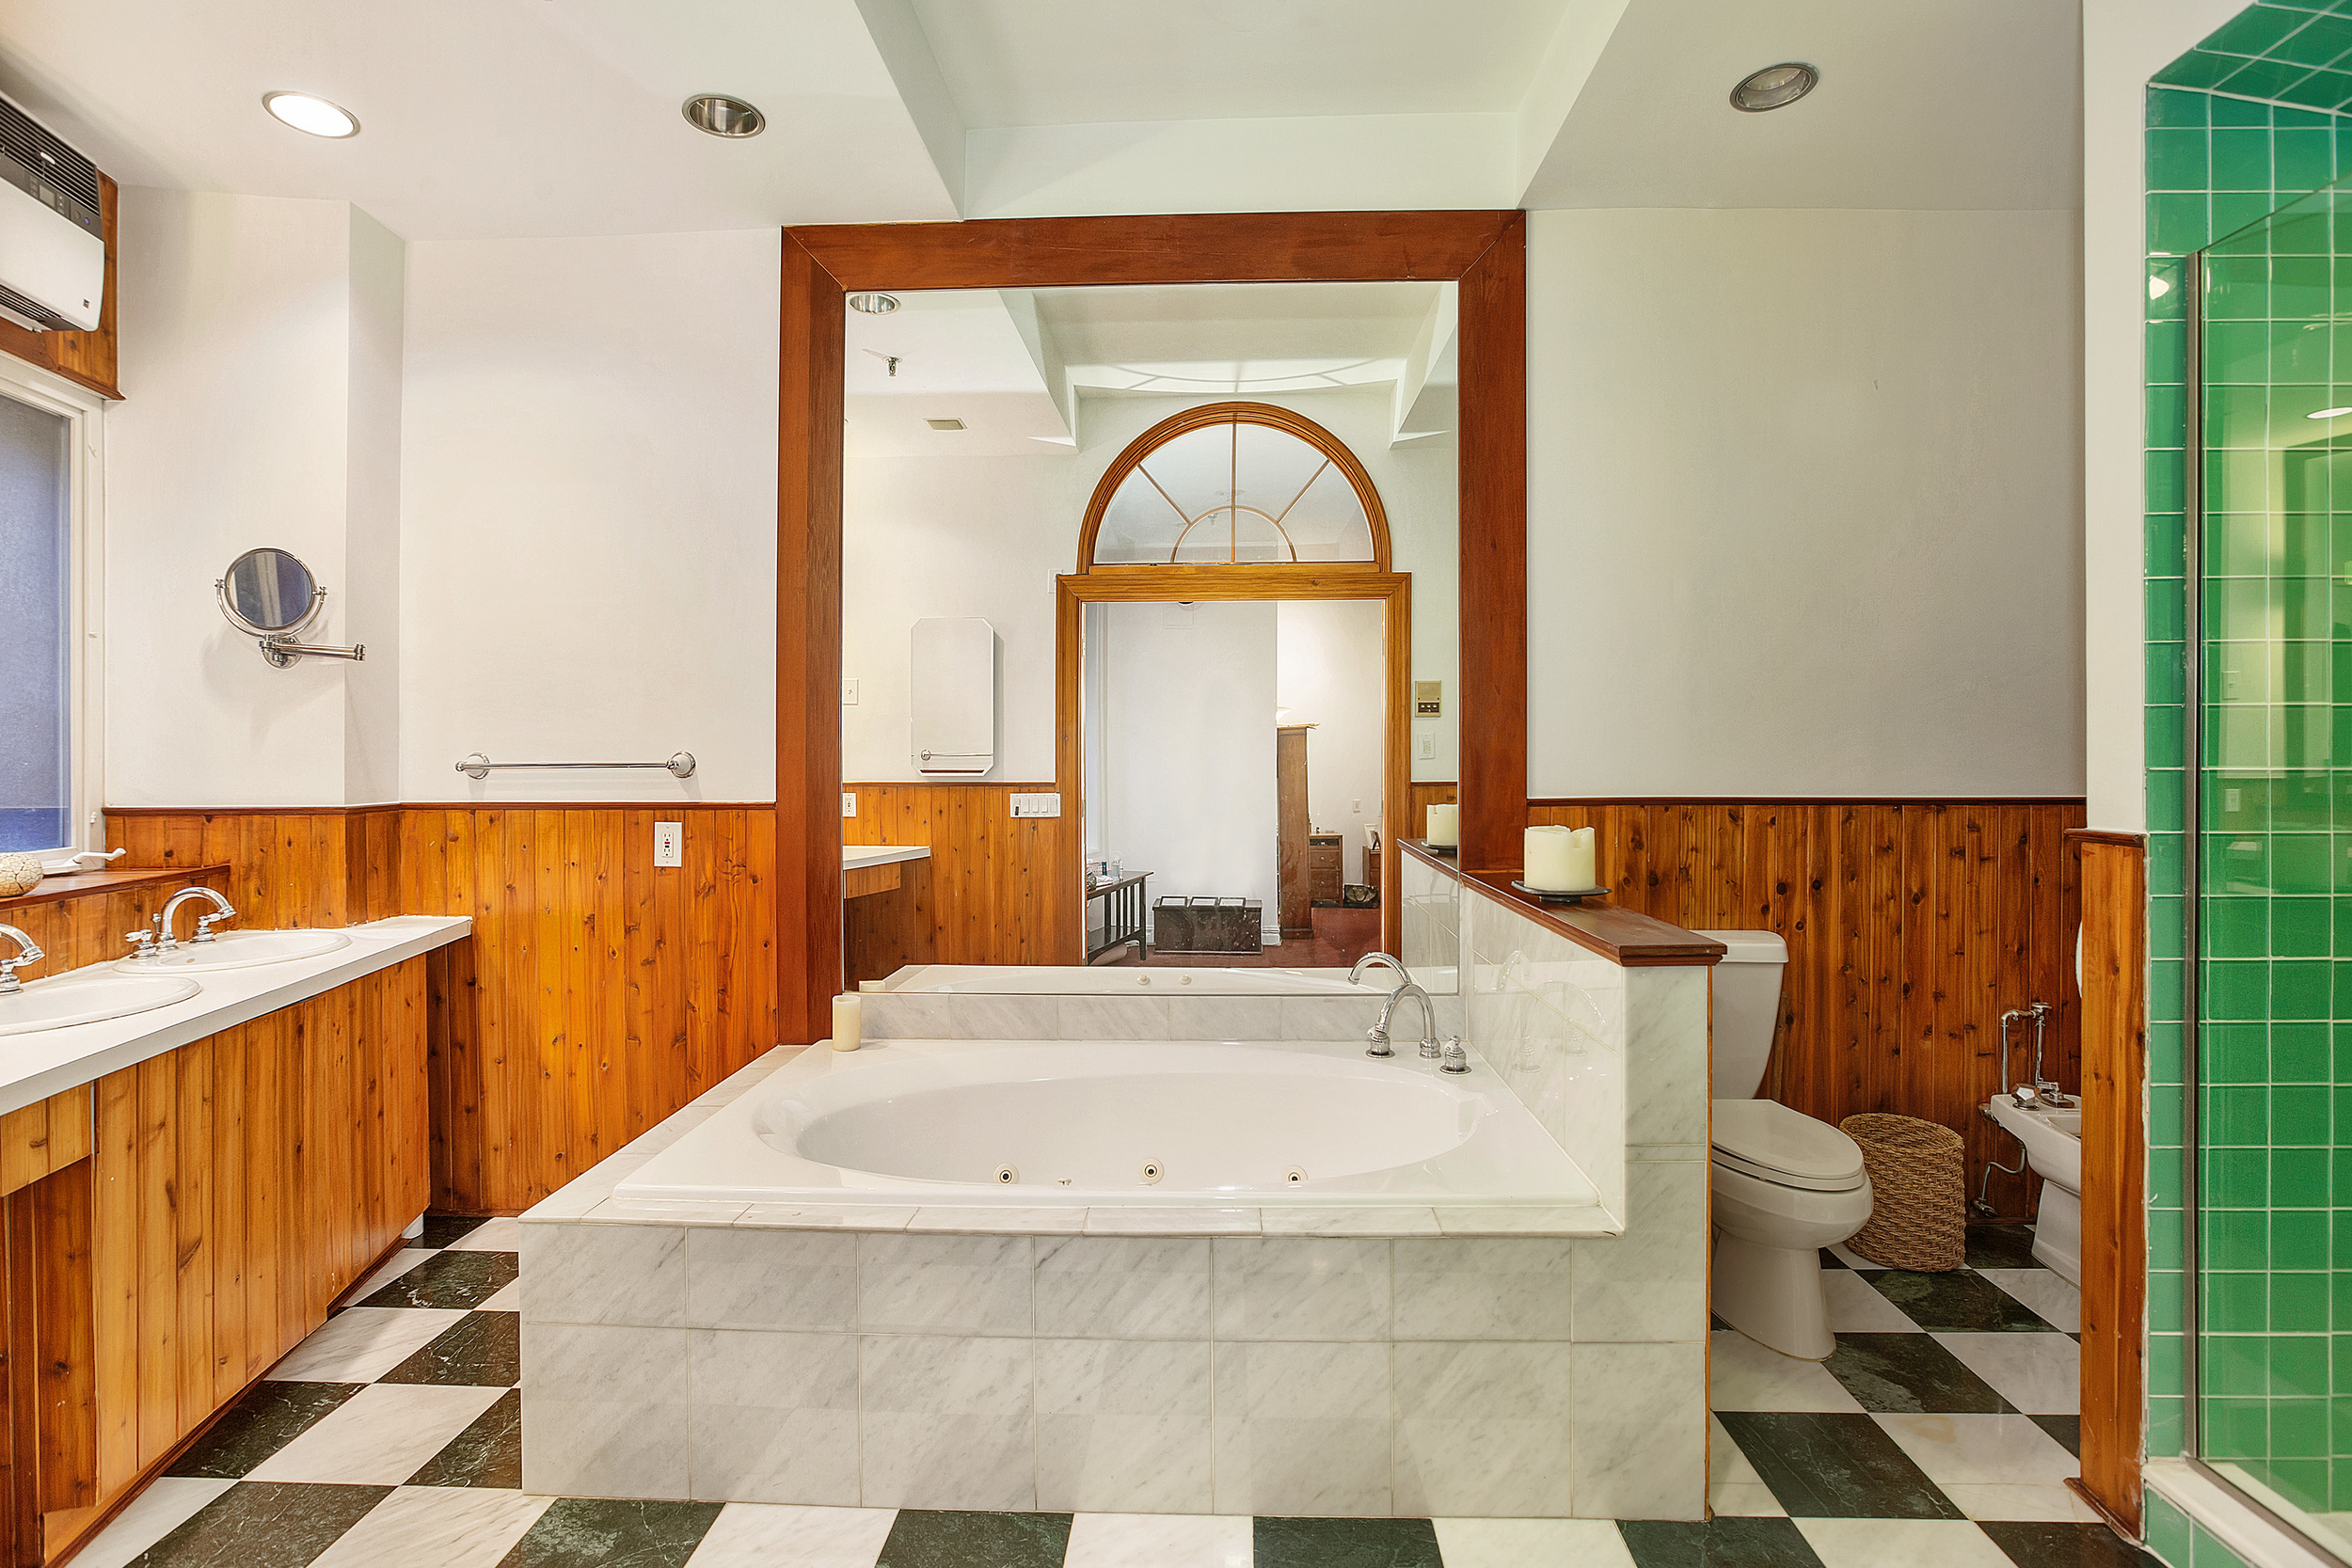 18East18thStreet4W_Dylan_Hildreth-Hoffman_DouglasElliman_Photography_33613556_high_res.jpg